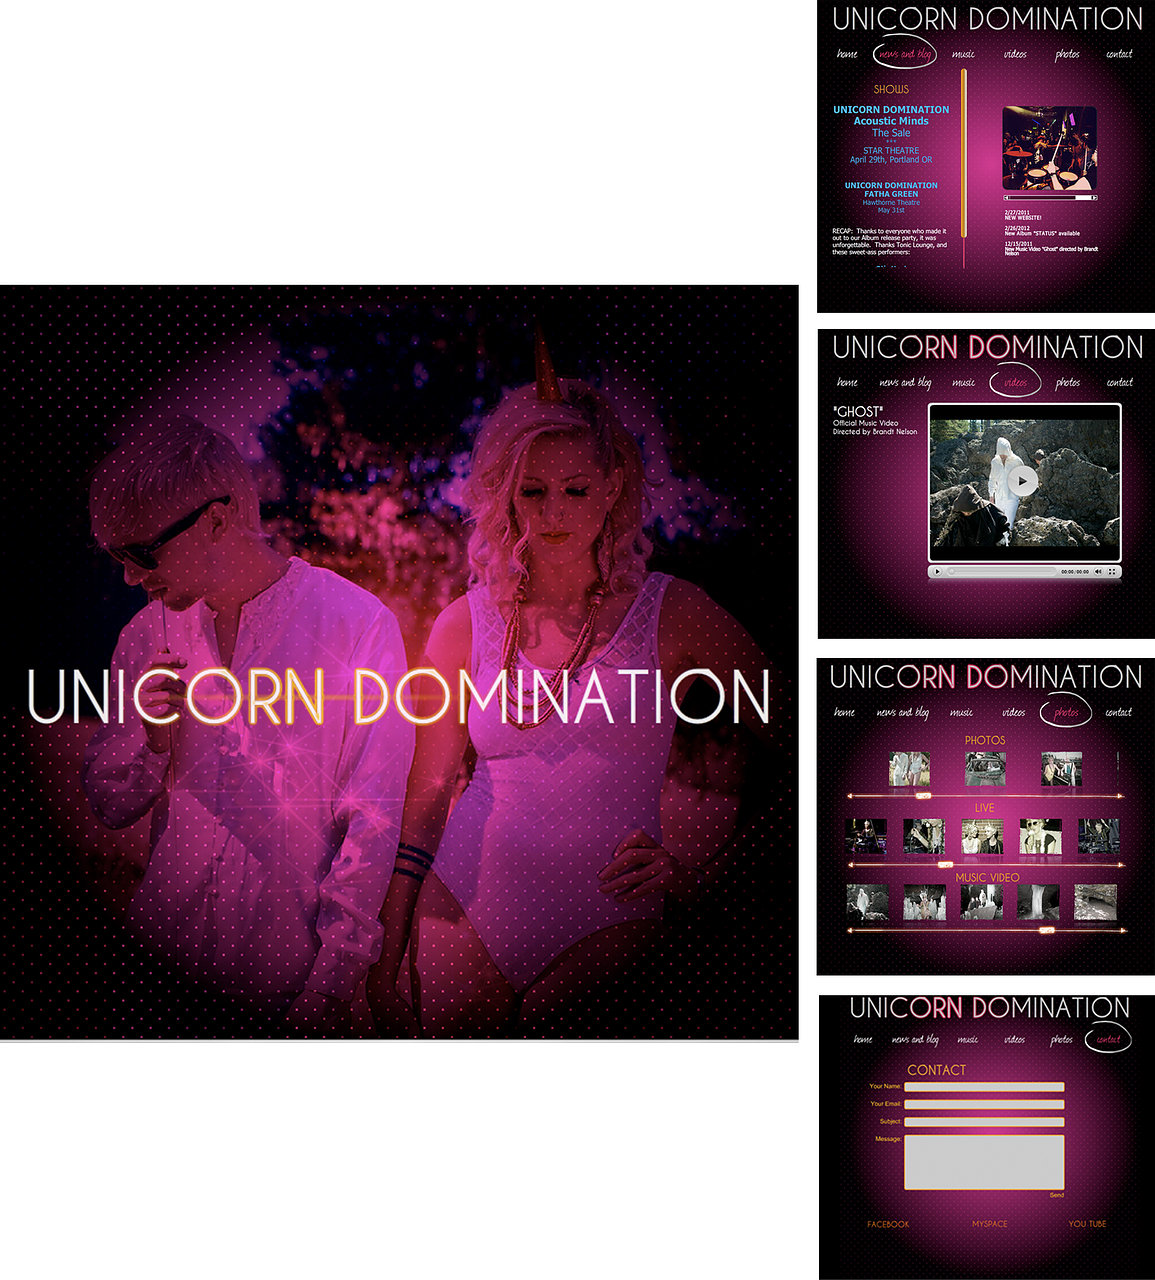 unicorn domination band website.jpg